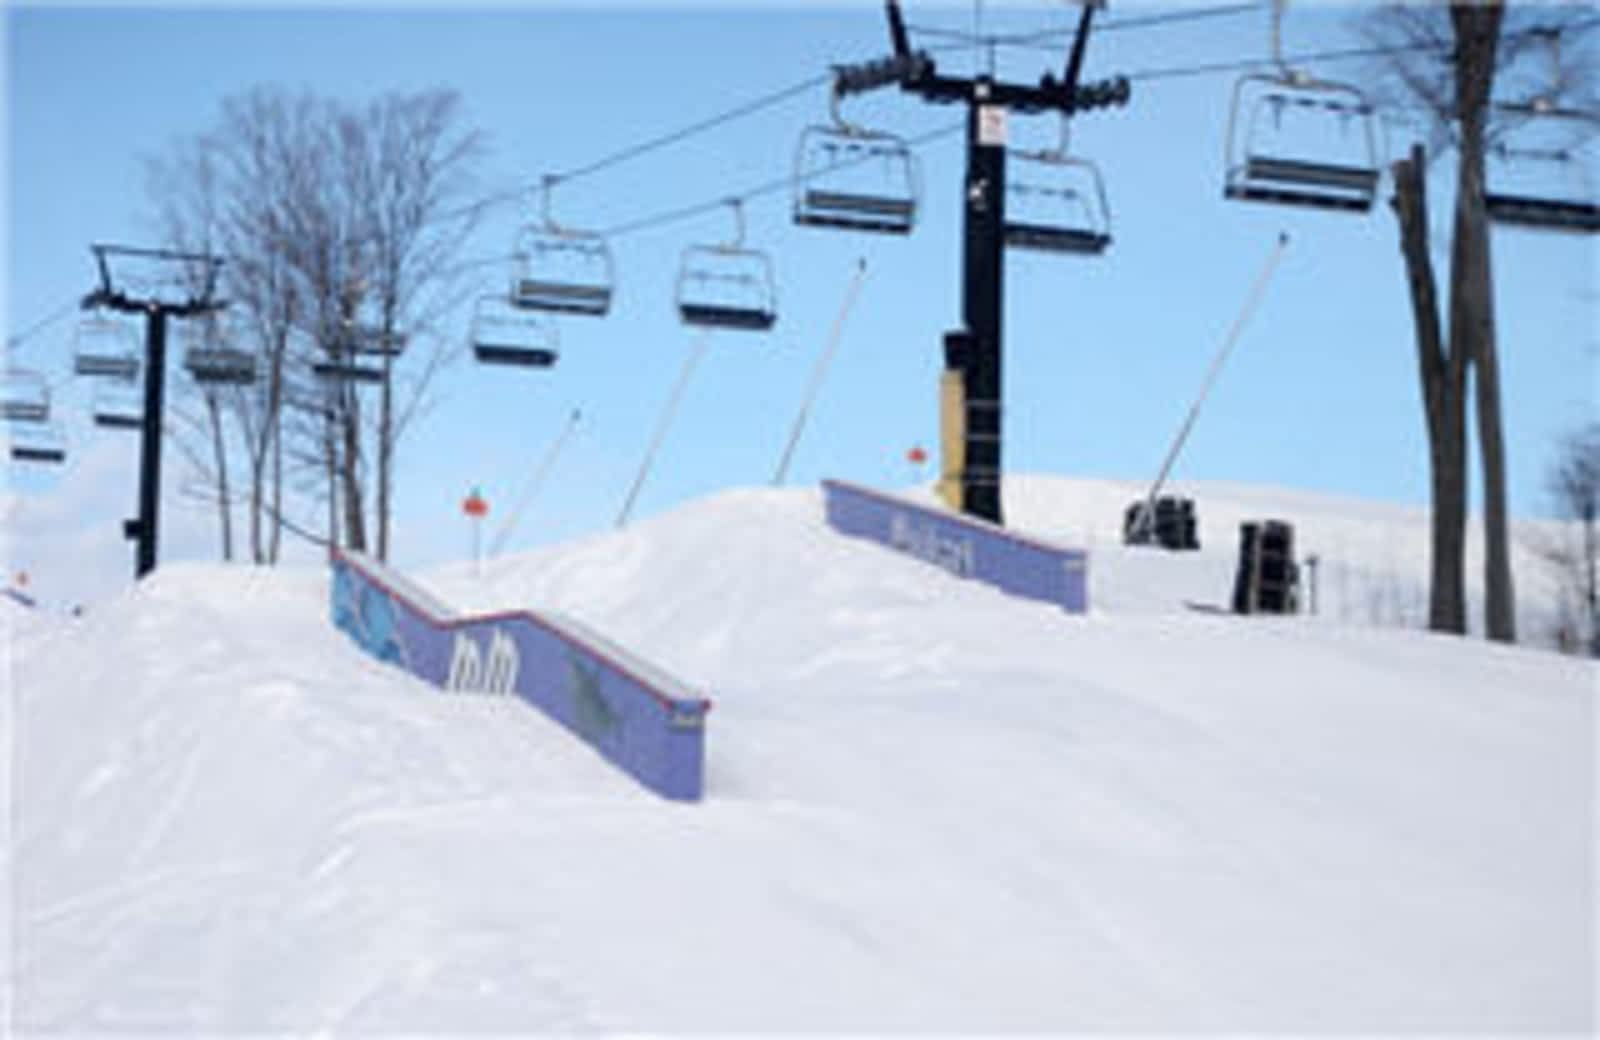 mt st louis-moonstone ski area - opening hours - 24 mt st louis rd w